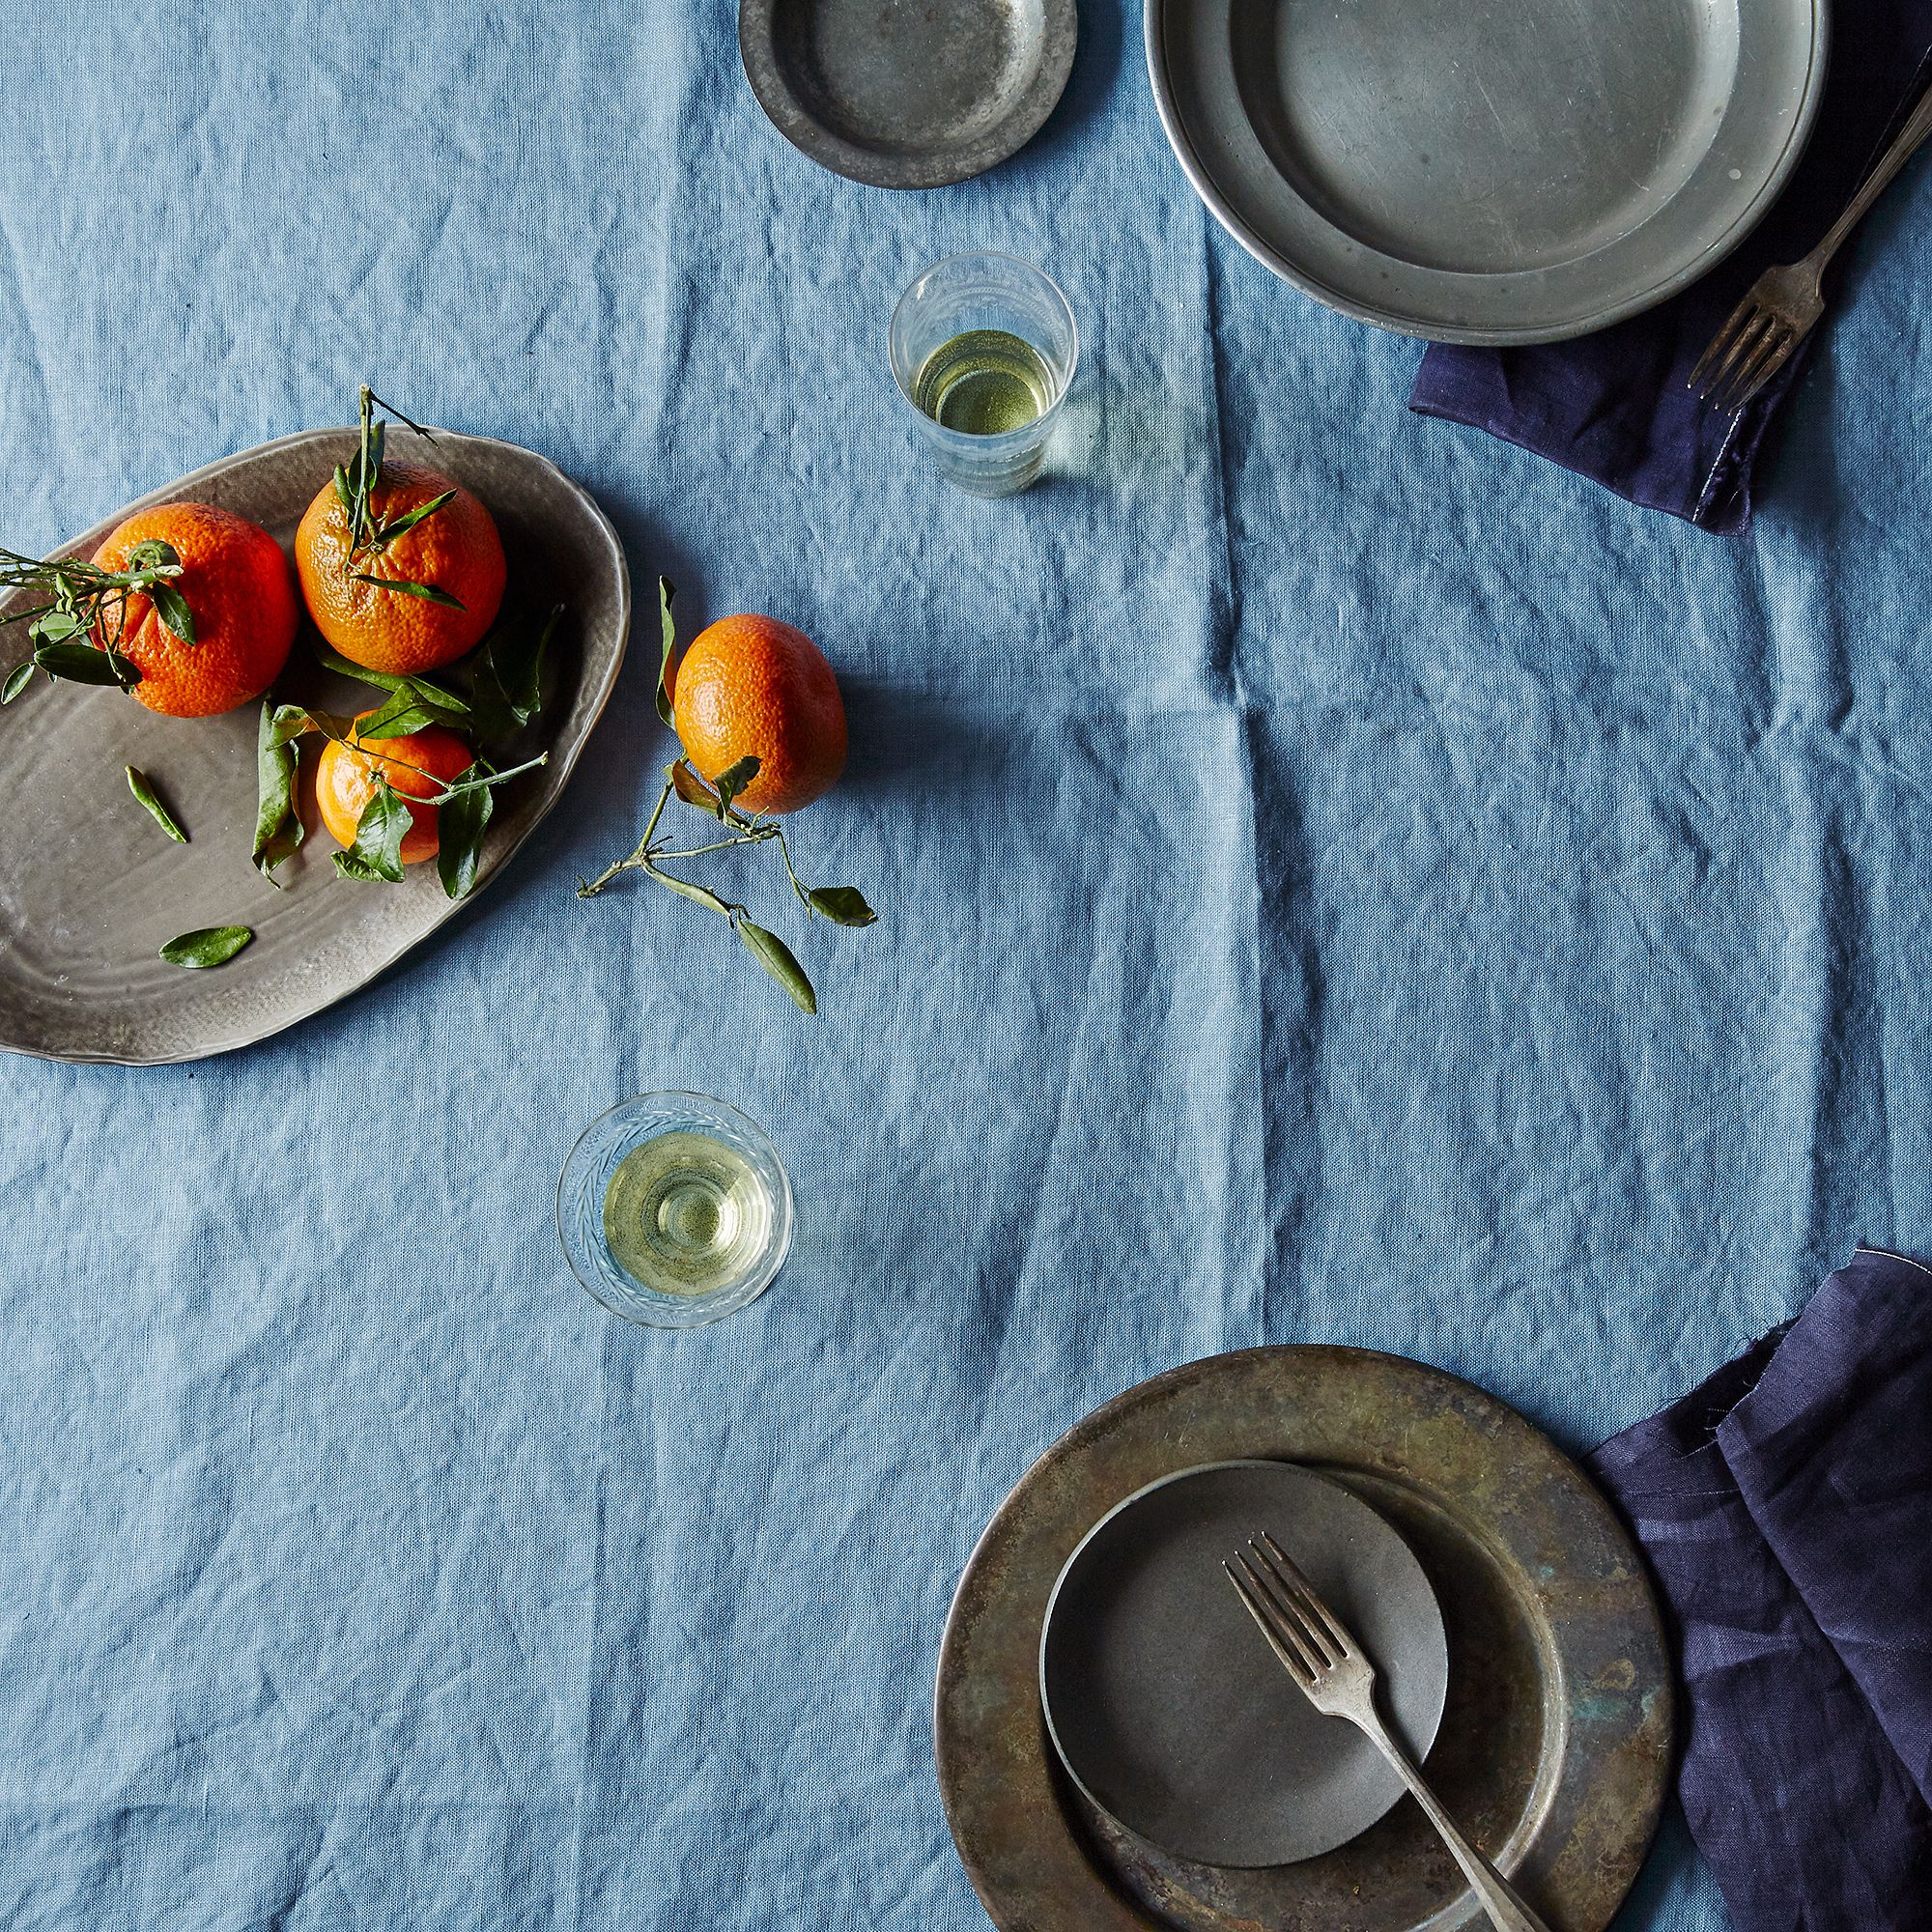 Kitchen table cloth images table decoration ideas watchthetrailerfo blue linen tablecloth on food52 watchthetrailerfo workwithnaturefo